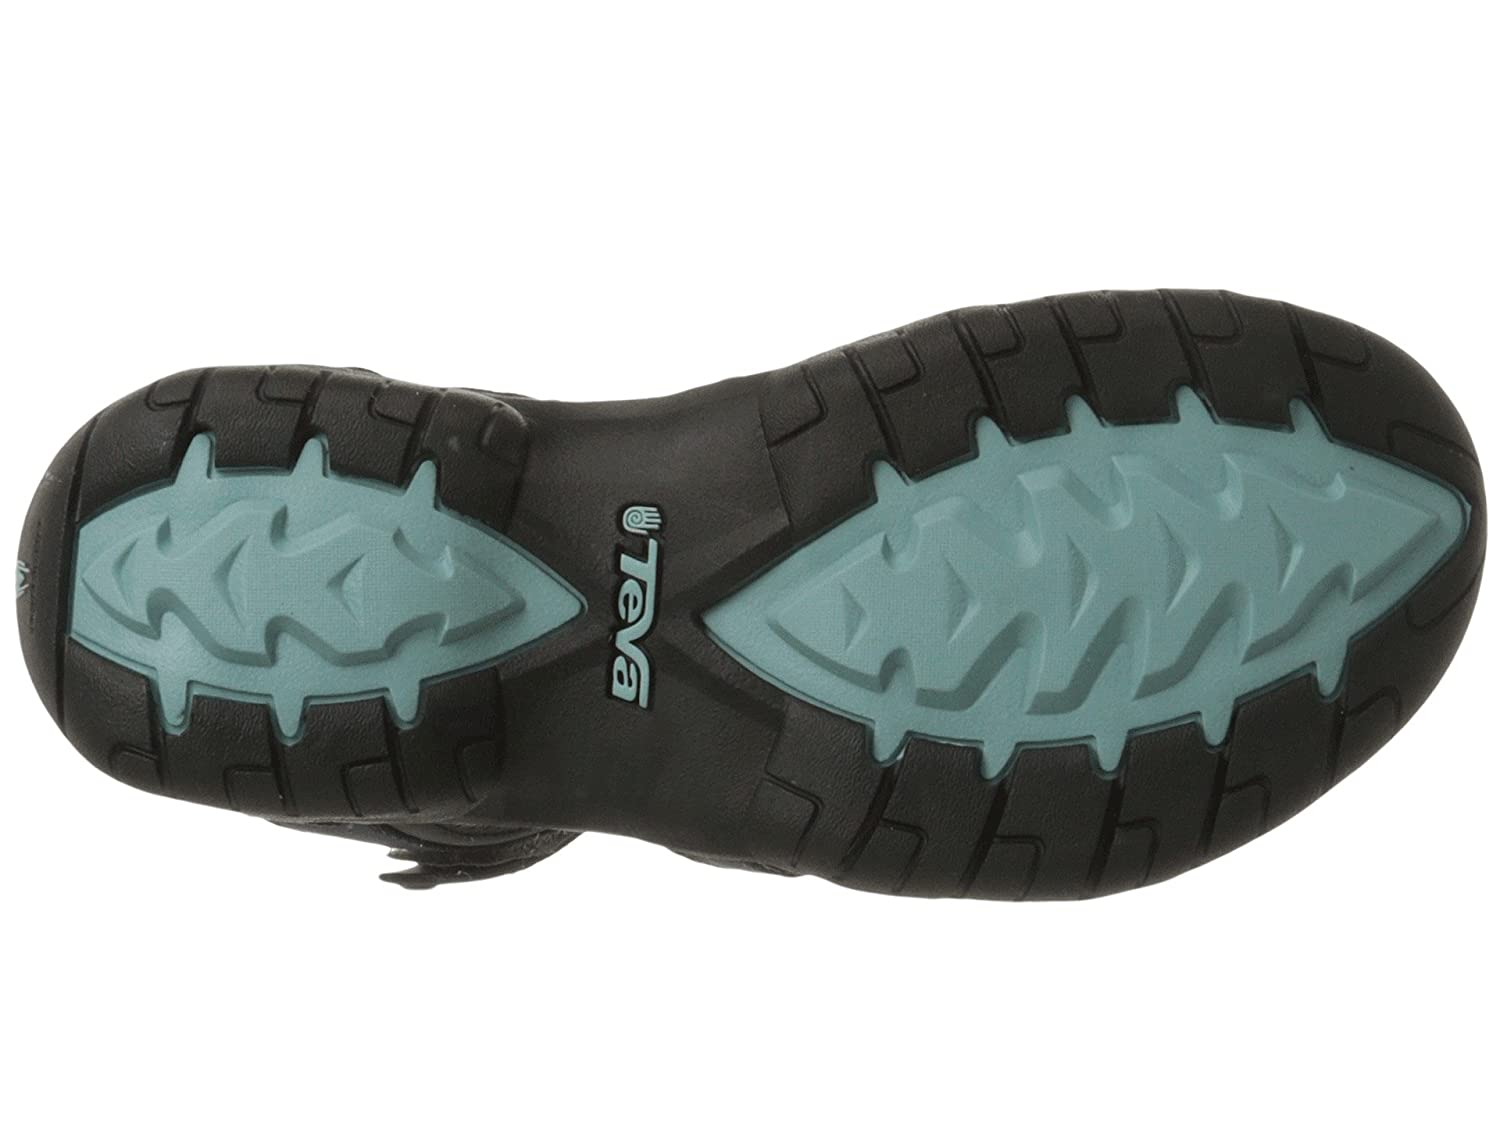 Teva Women's Tirra B(M) Athletic Sandal B0713YD3Y4 9 B(M) Tirra US|Bering-sea 445c25